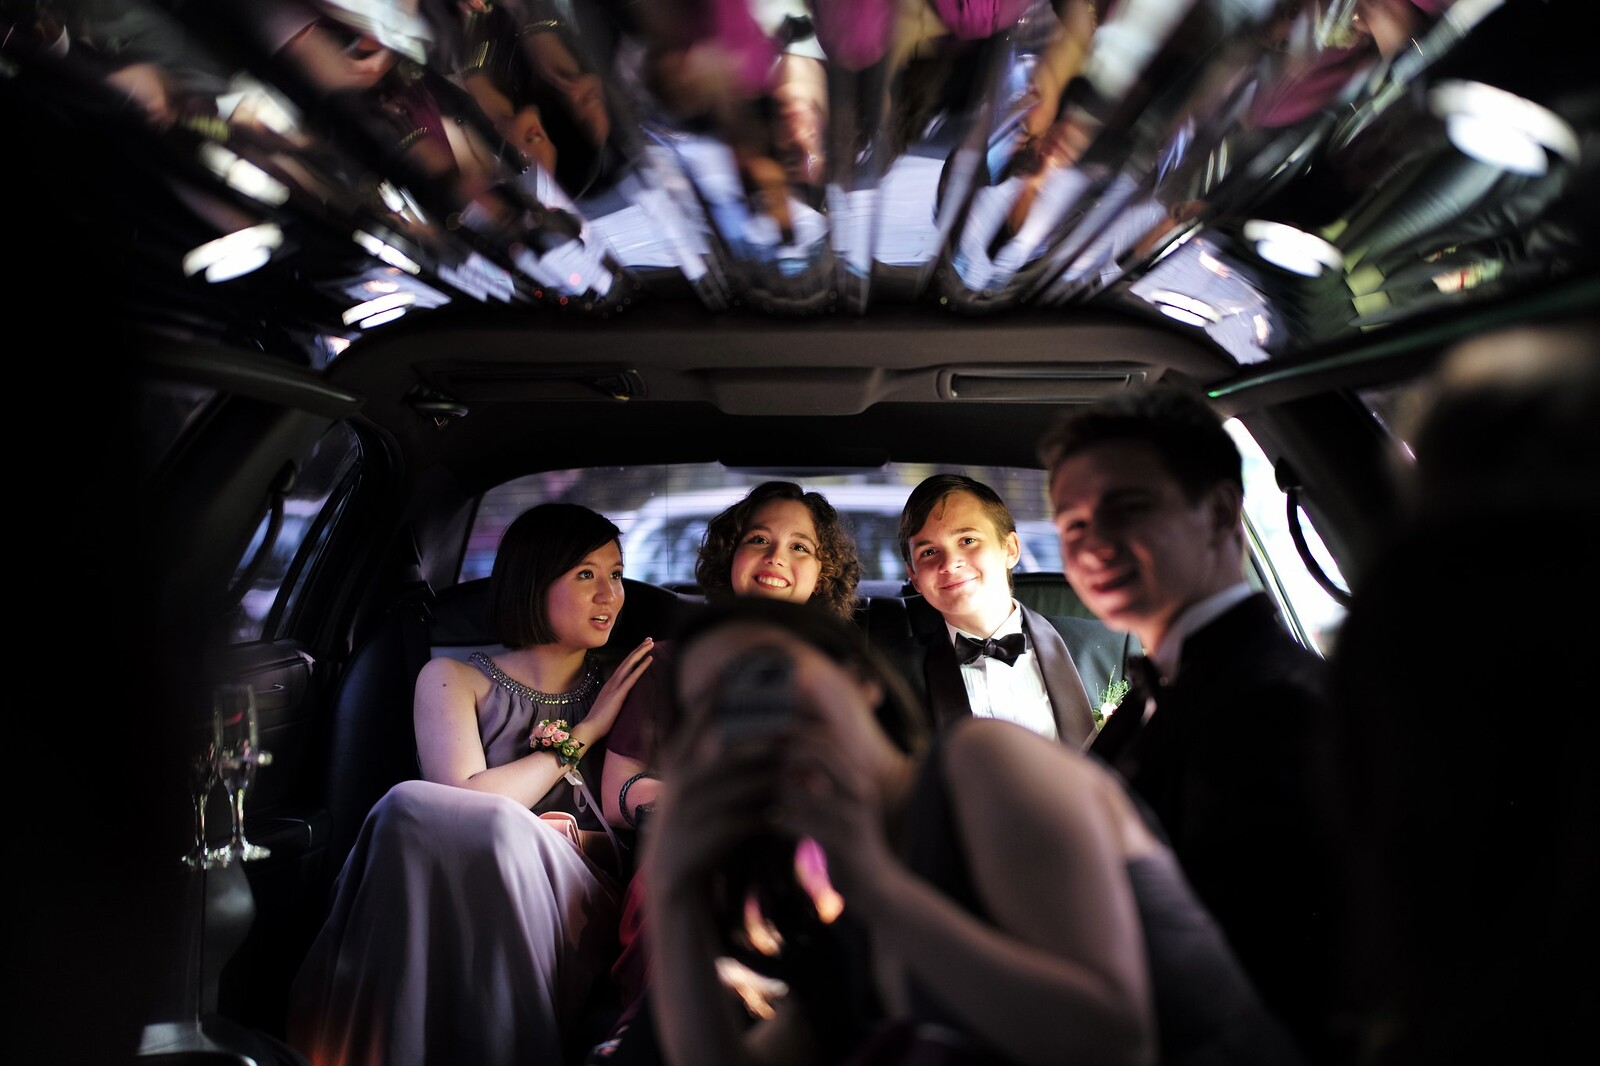 Limo party 13